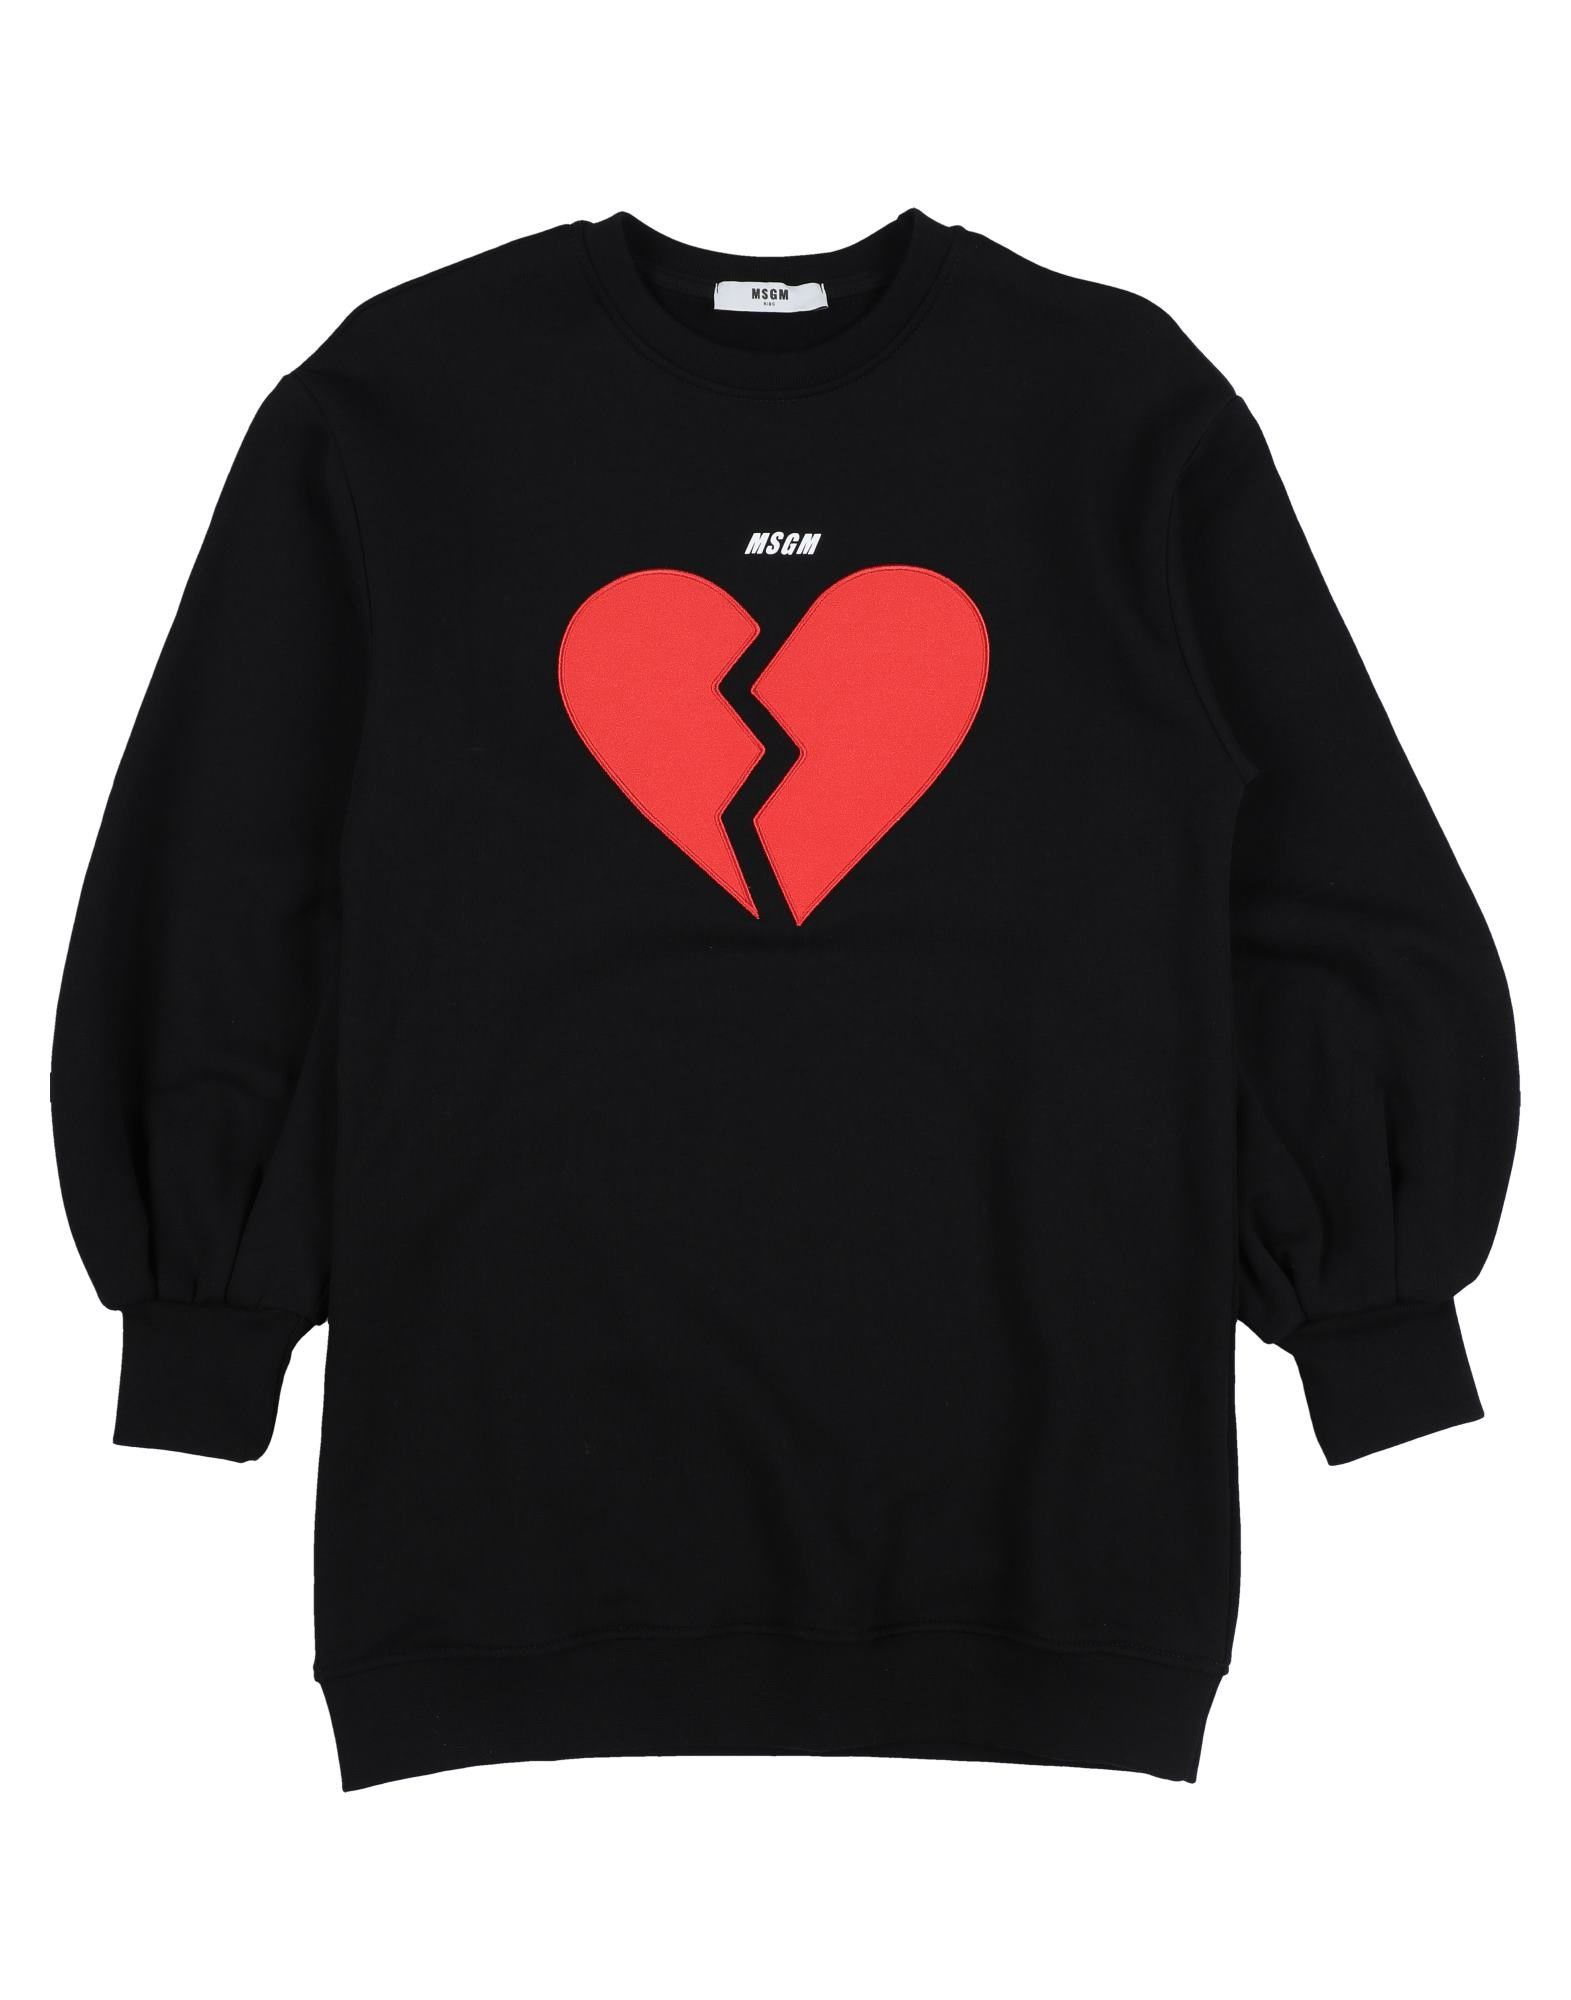 MSGM Dresses. sweatshirt fleece, logo, contrasting applications, solid color, round collar, long sleeves, no pockets, fleece lining, wash at 30degree c, do not dry clean, iron at 110degree c max, do not bleach, do not tumble dry. 100% Cotton